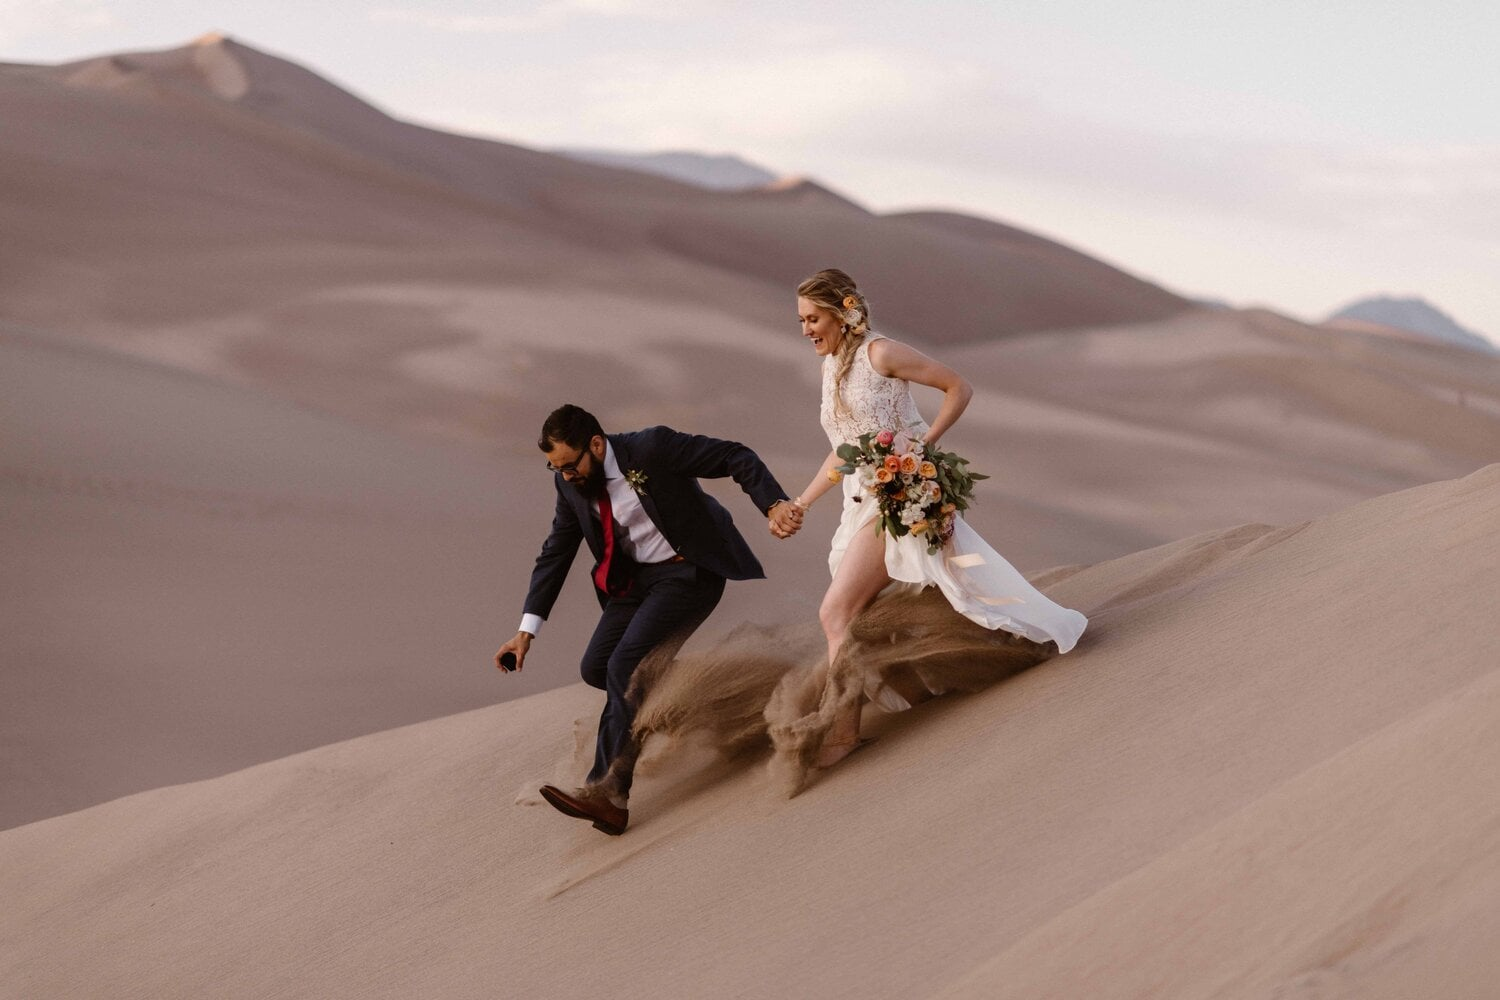 A bride and groom run down a sand dune hill.